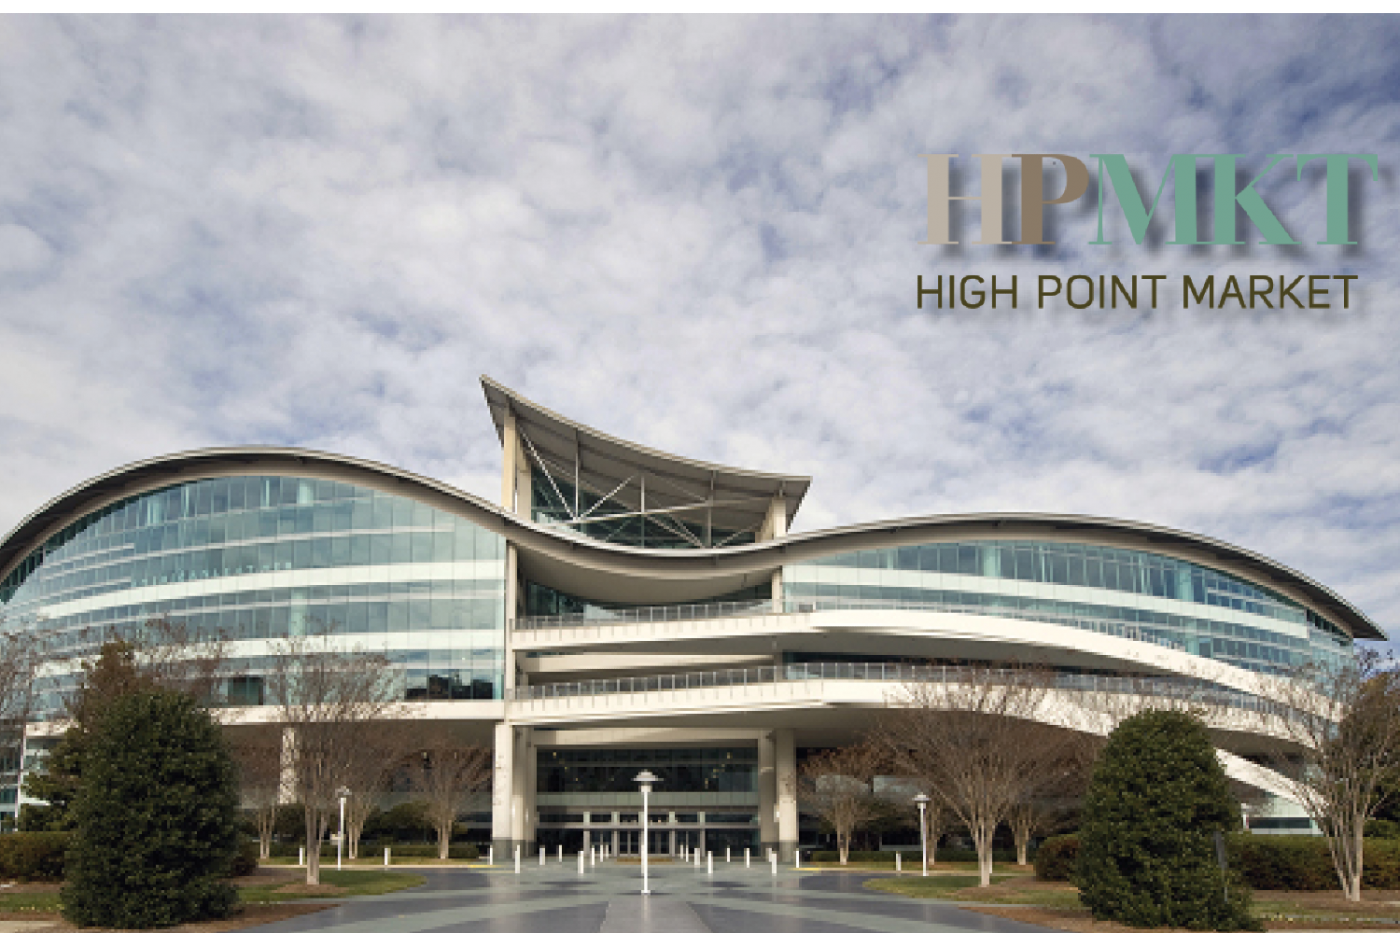 furnishing trade show High Point Market – Furnishing Trade Show Delayed to June 2021 hpmkt 1400x933